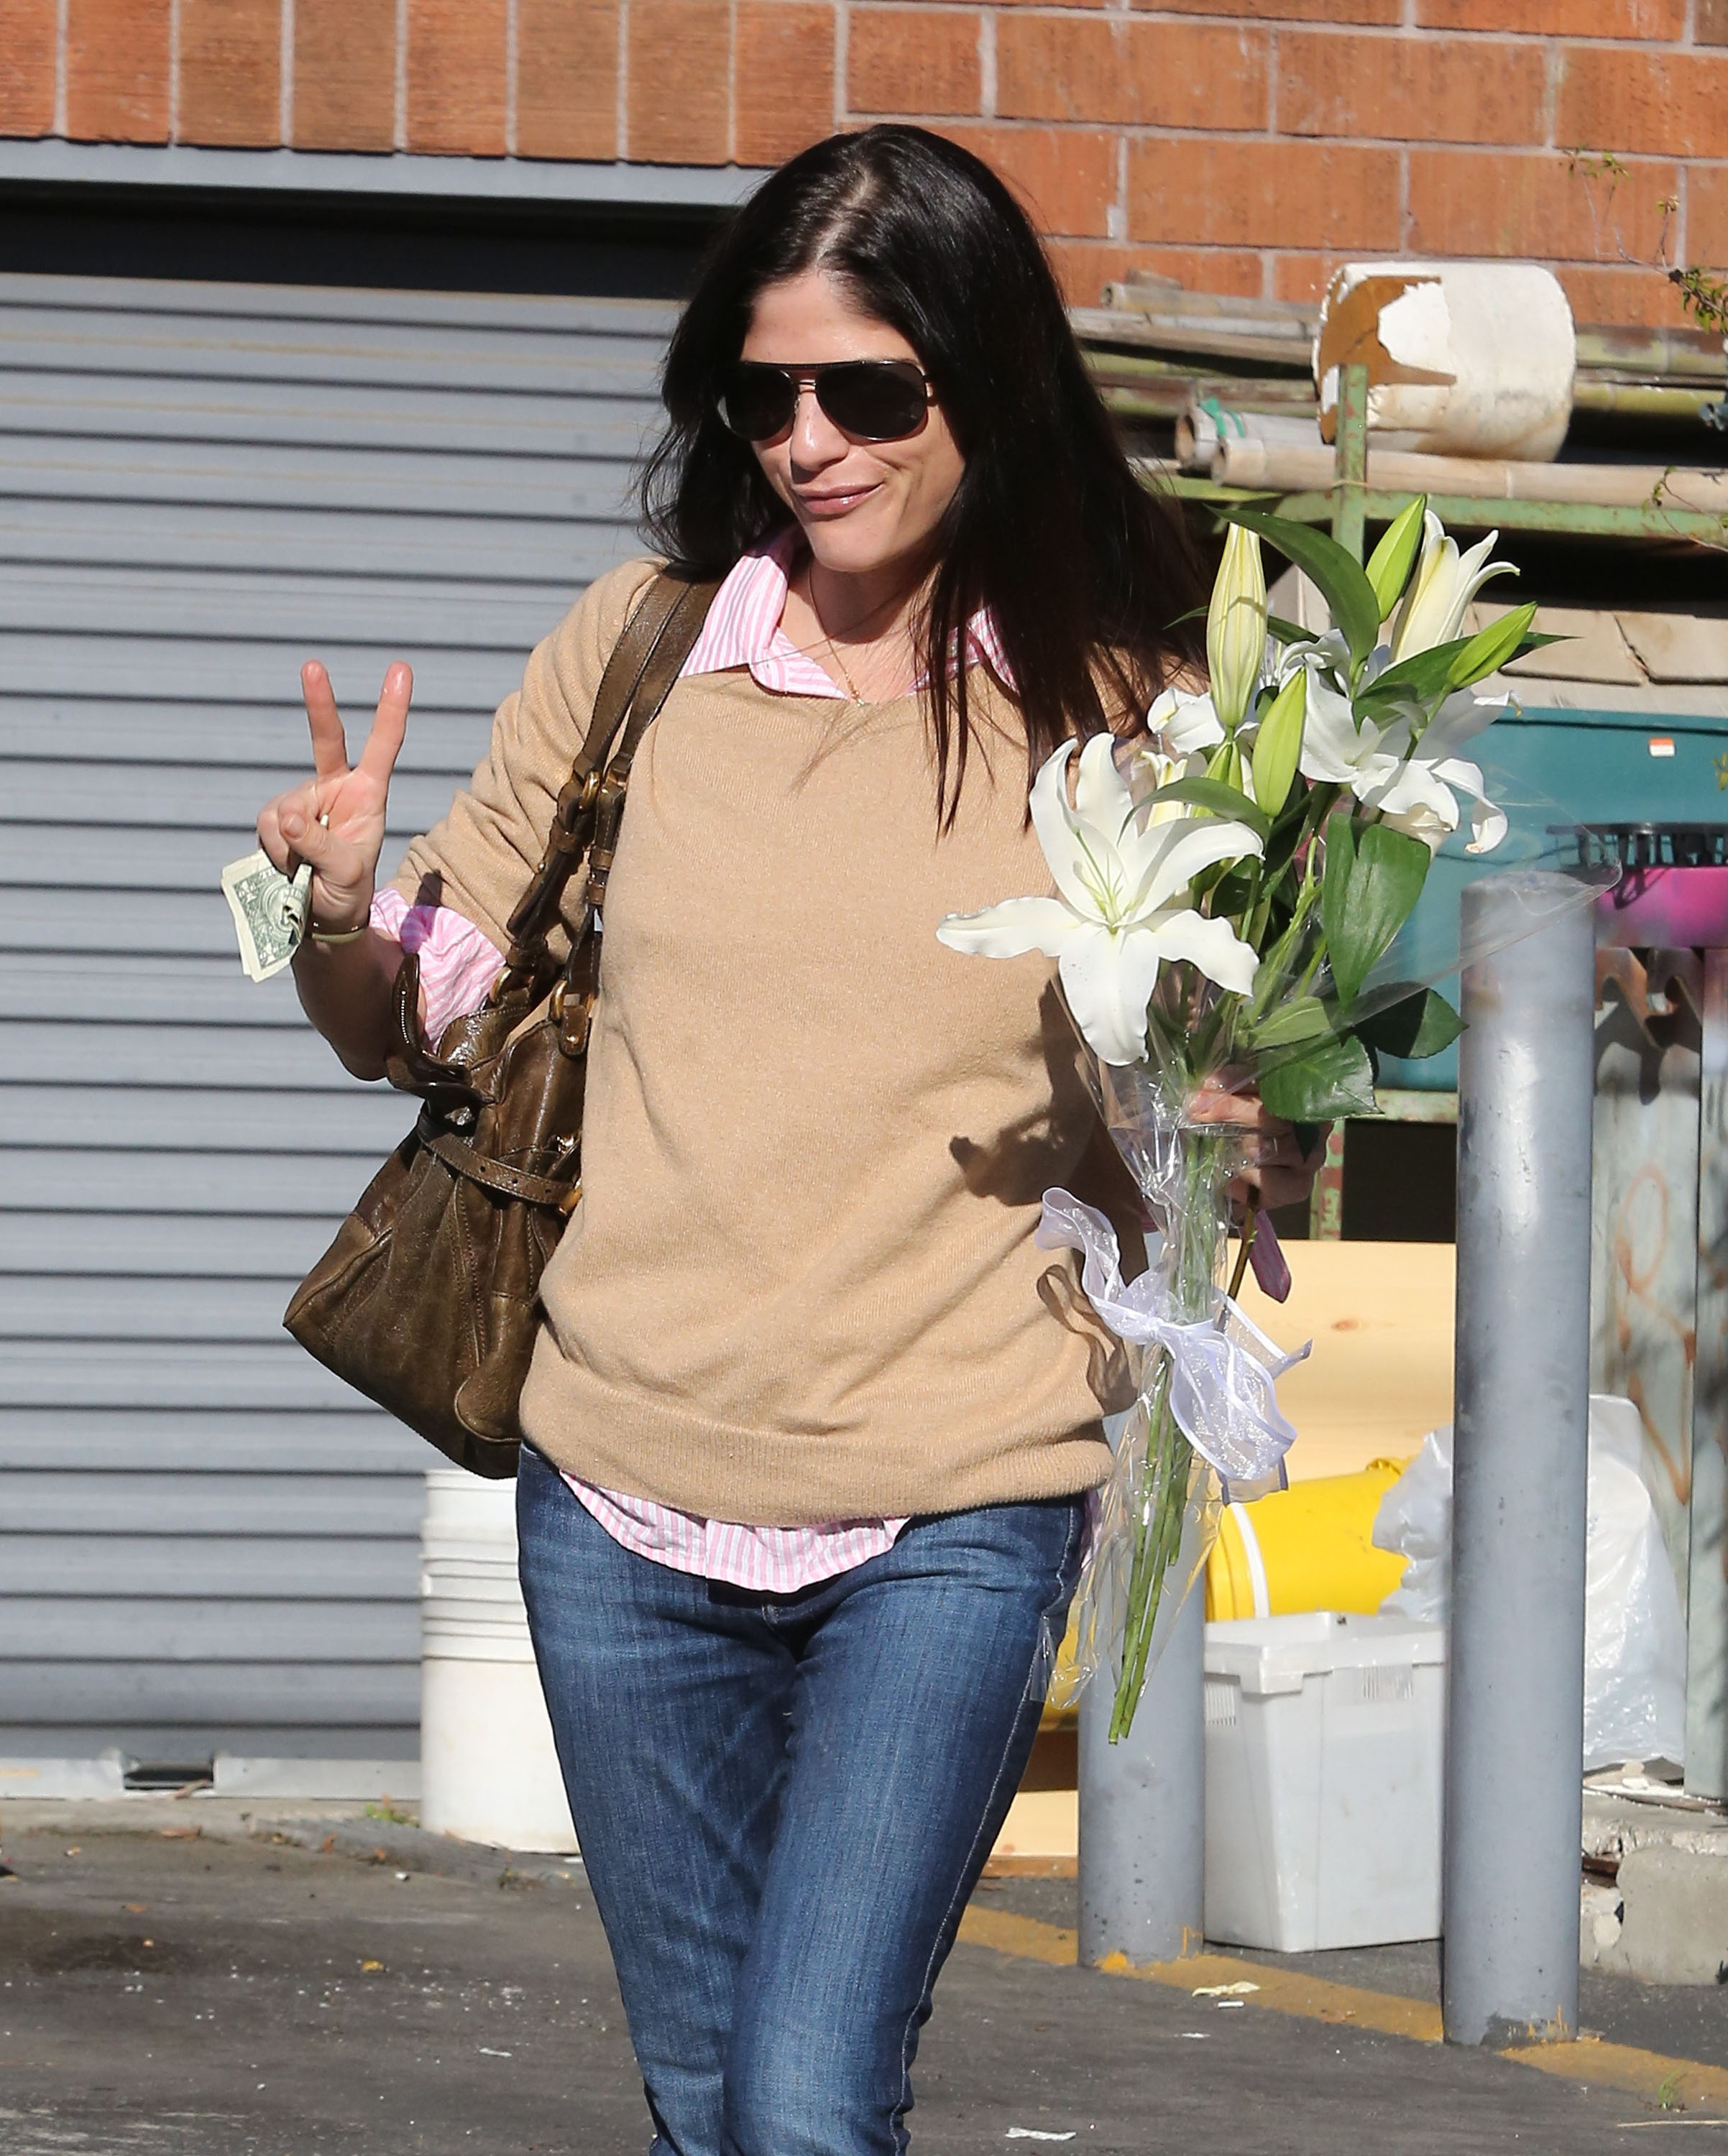 Celeb Style: Selma Blair Hits The Drycleaners